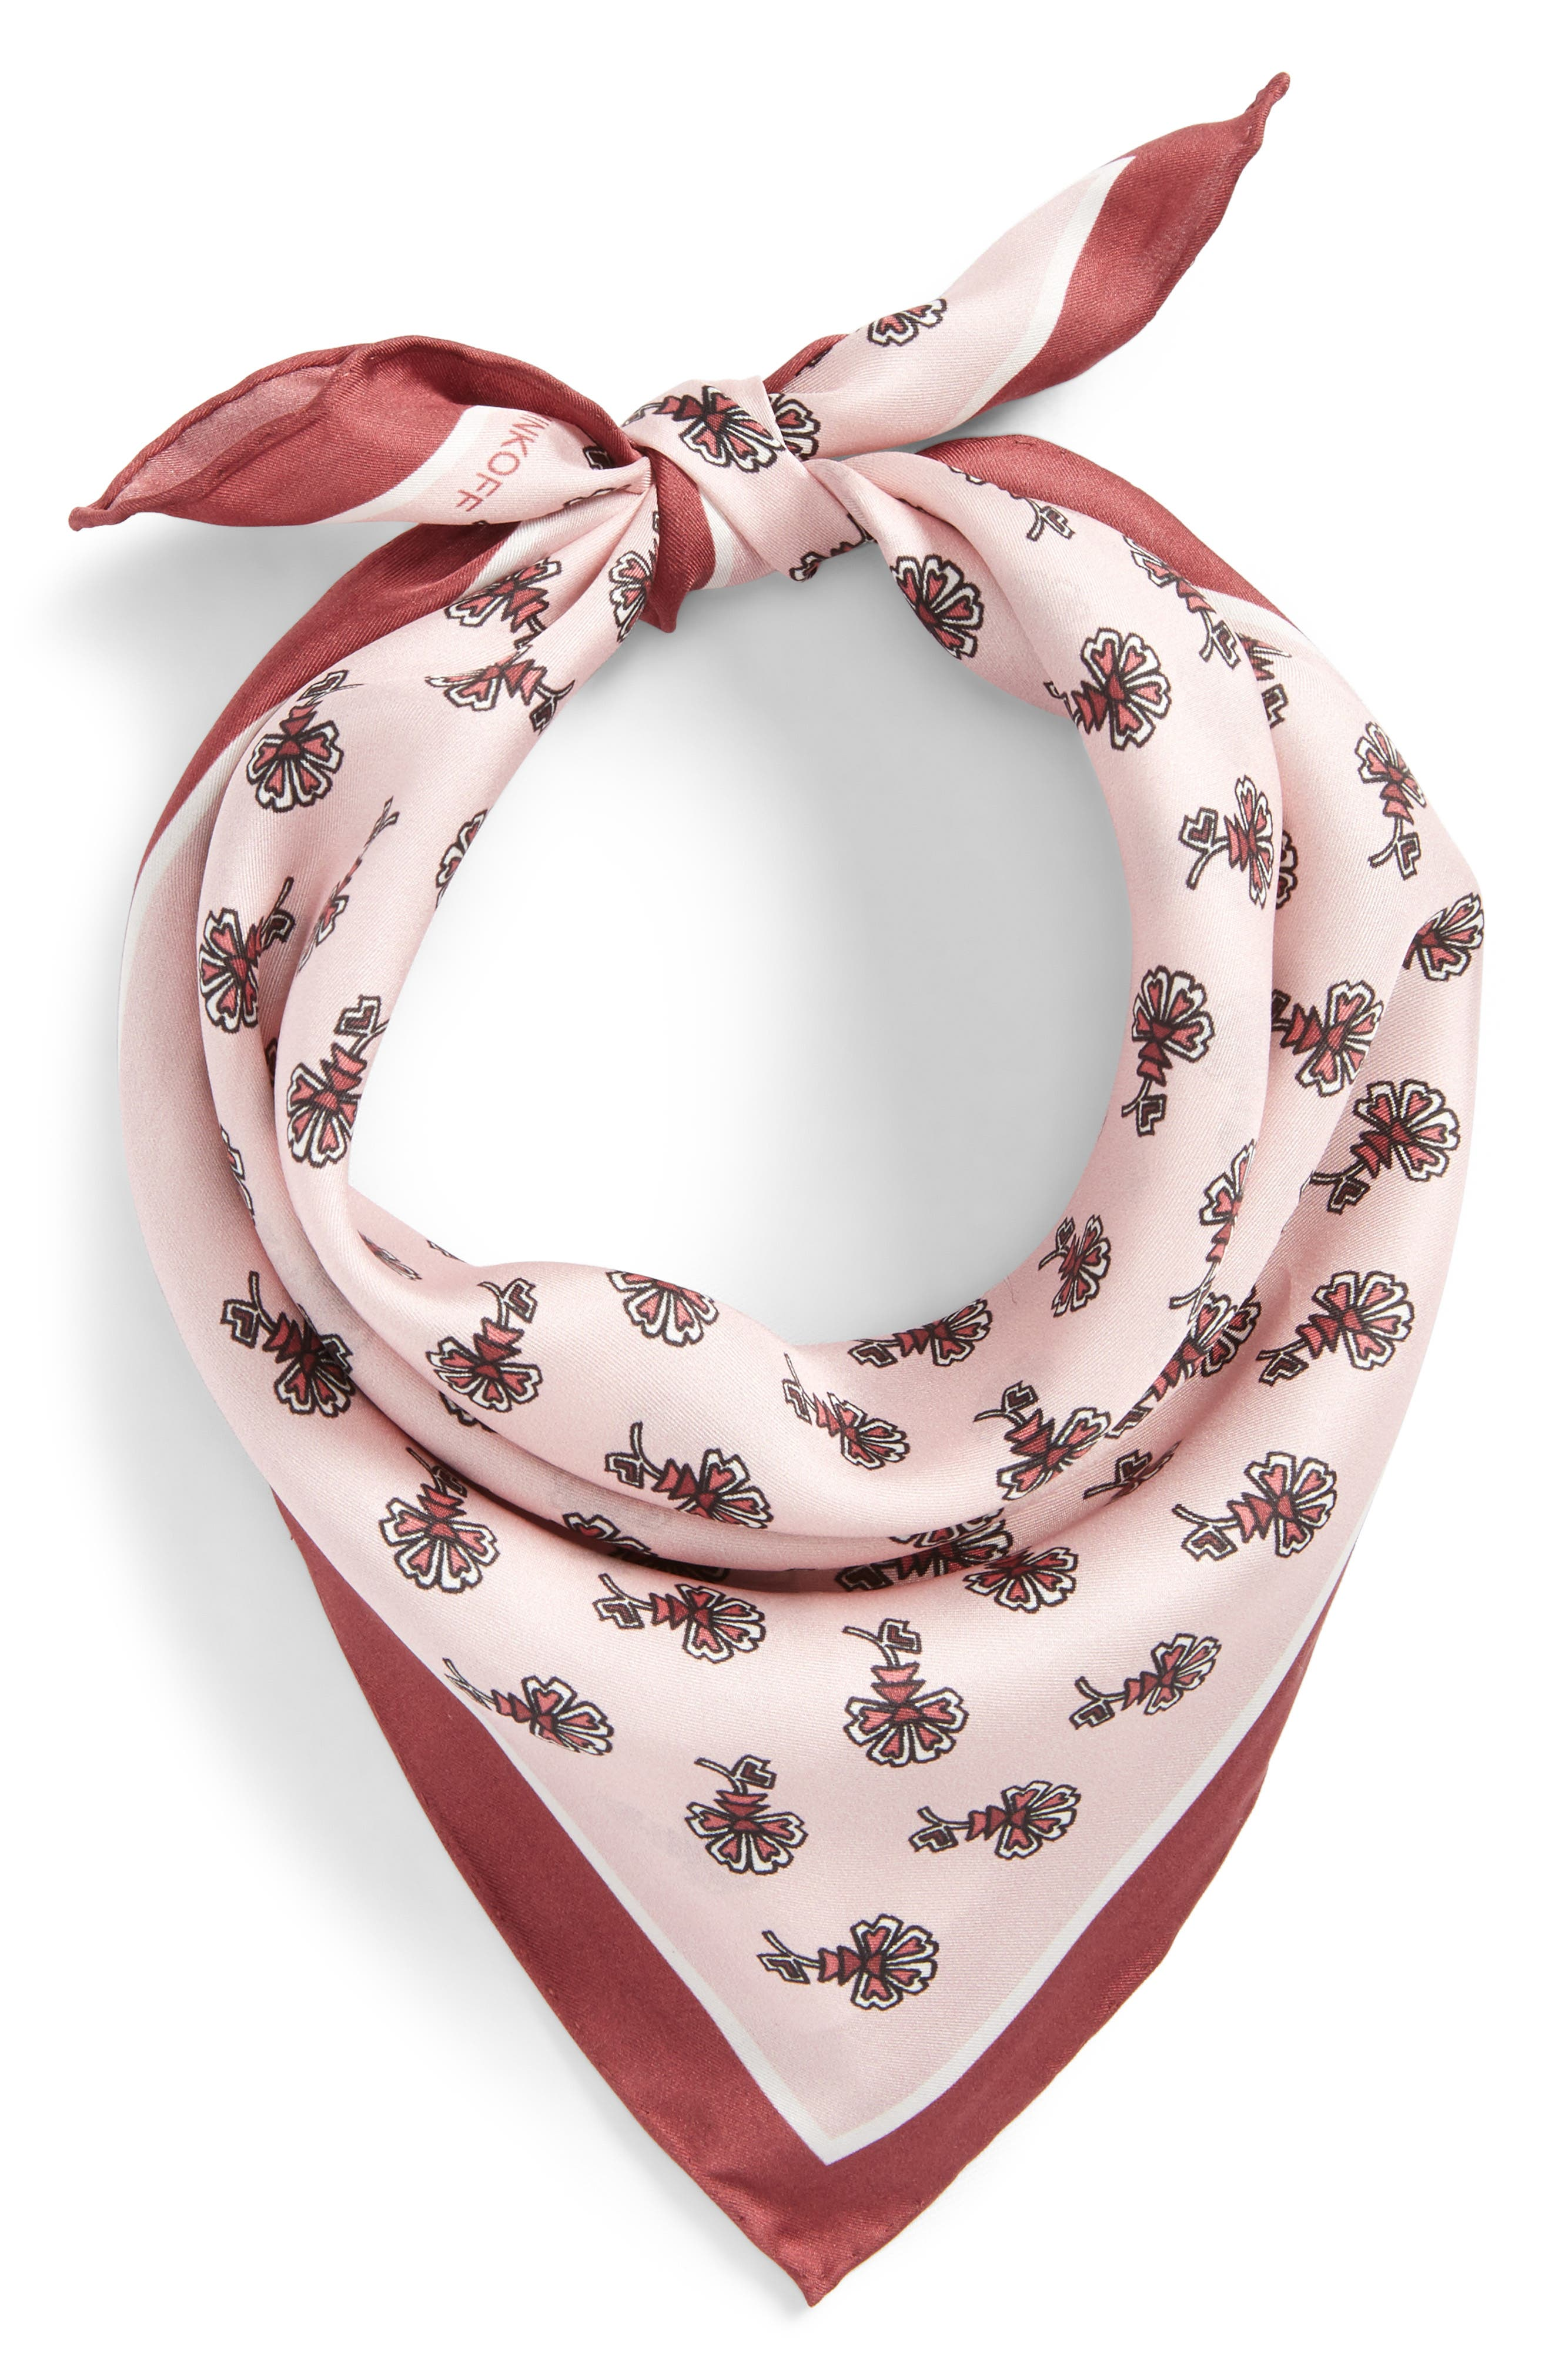 Tiled Rosette Silk Bandana,                         Main,                         color, Zephyr